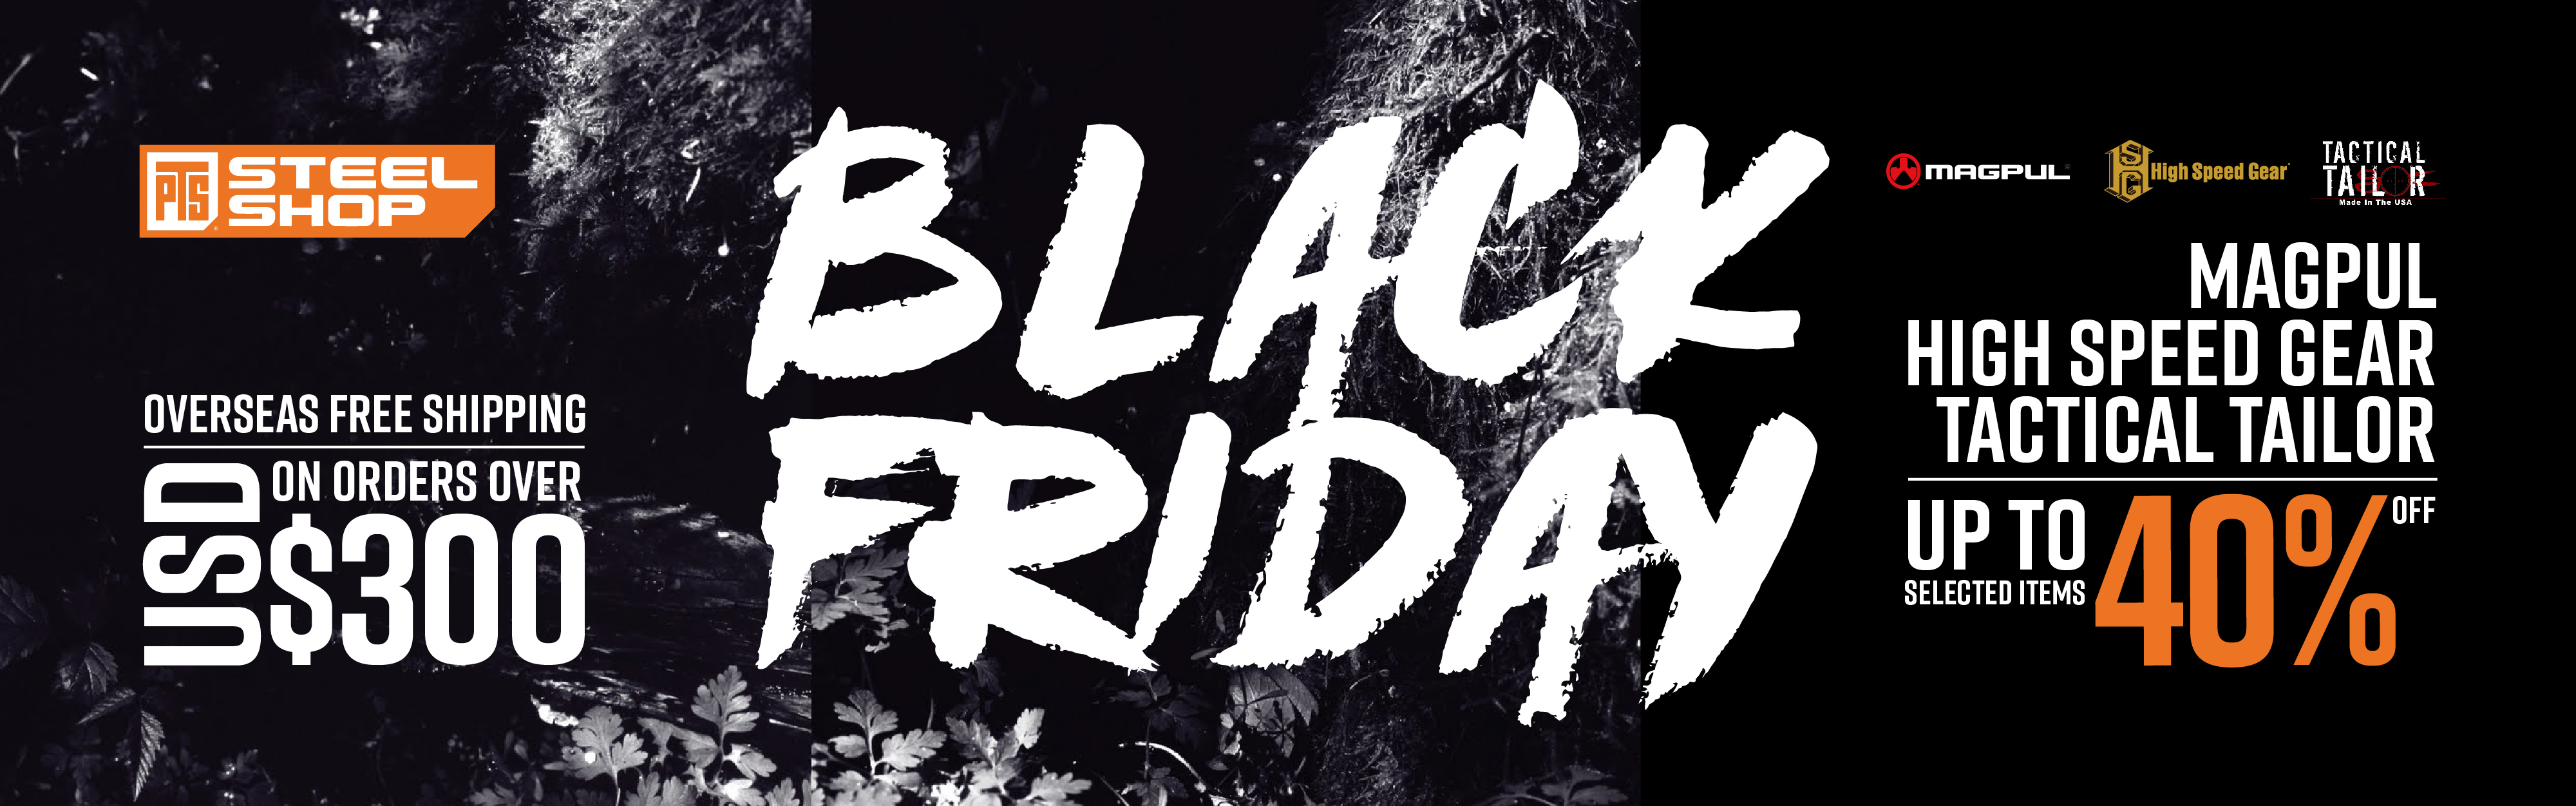 PTS Steel Shop Black Friday sale,Magpul,high speed gear,tactical tailor,up to 40%